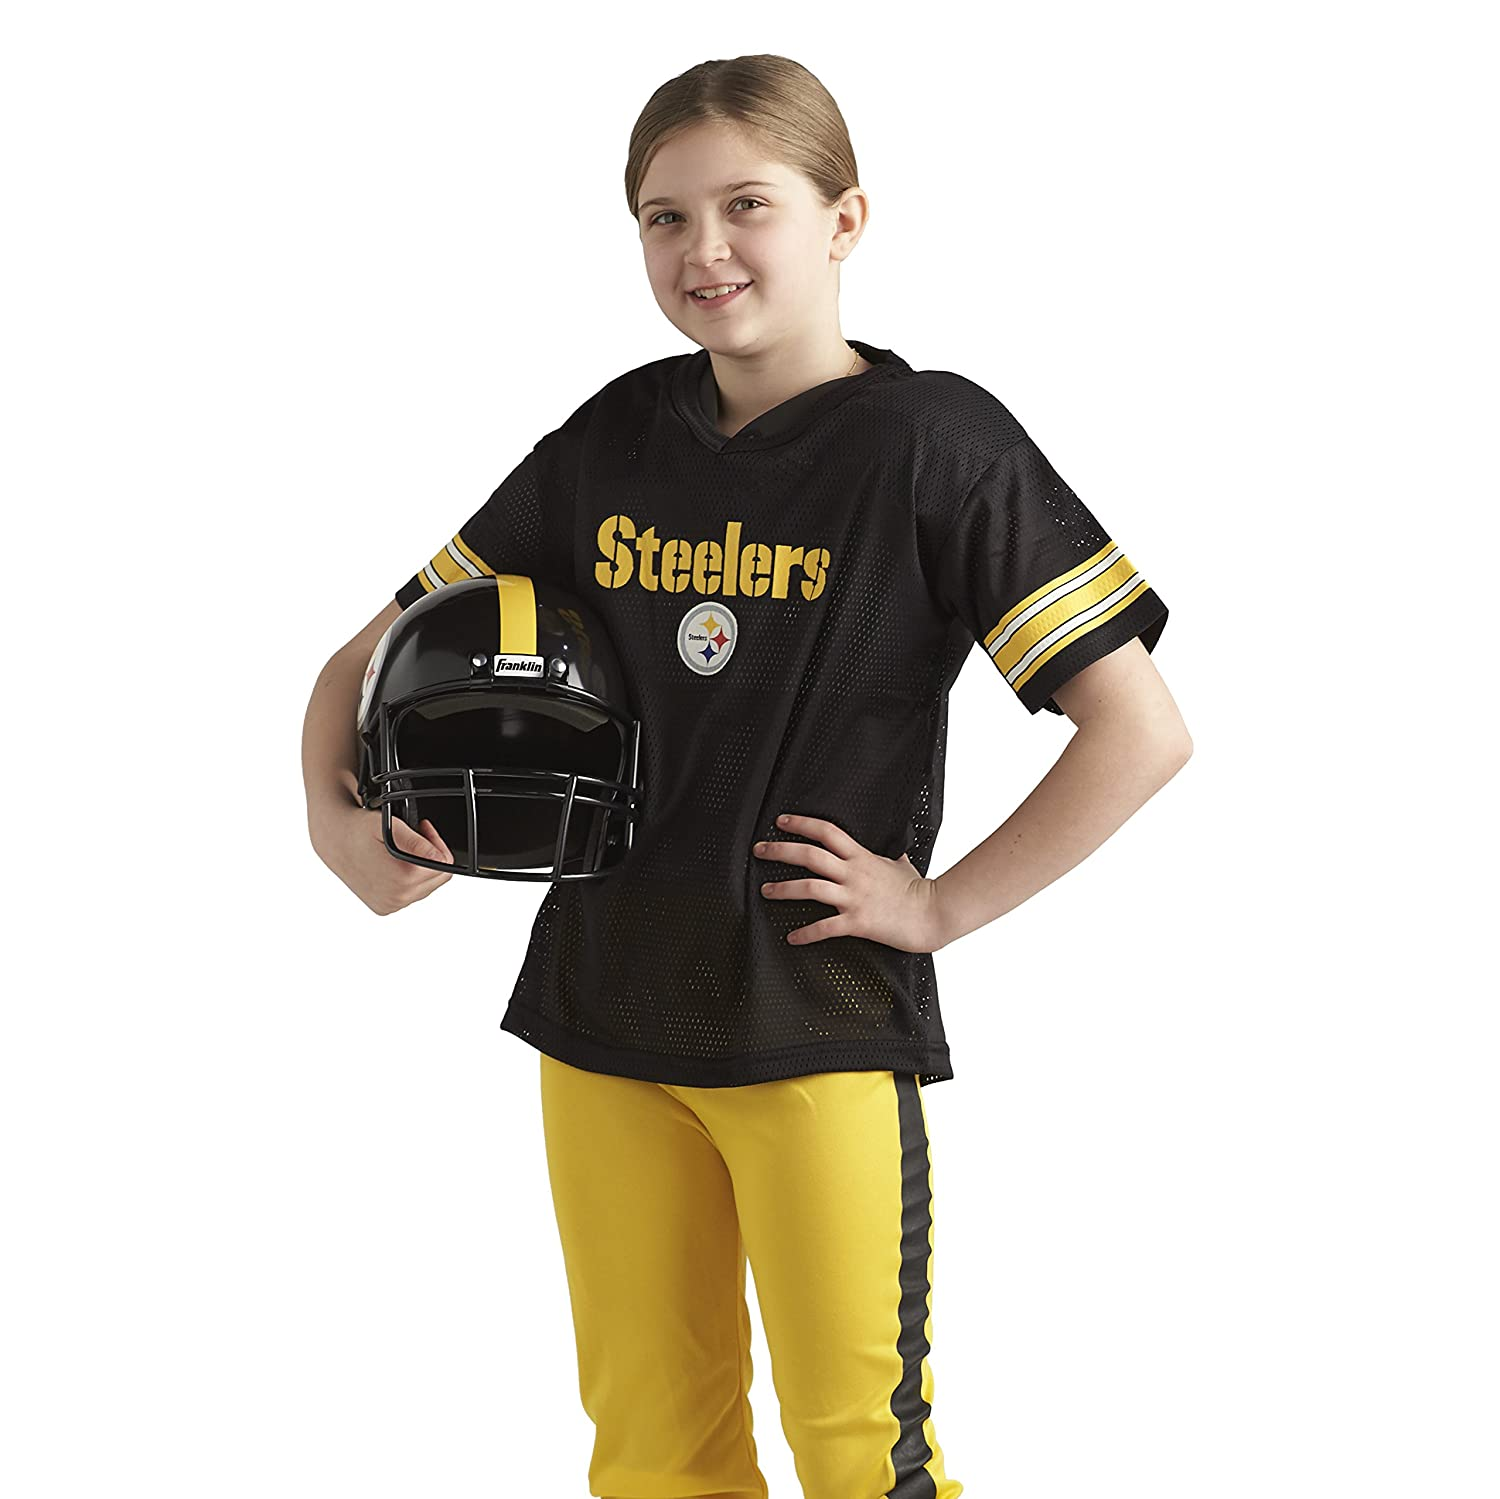 Amazon.com: Franklin Sports NFL Pittsburgh Steelers Deluxe Youth ...